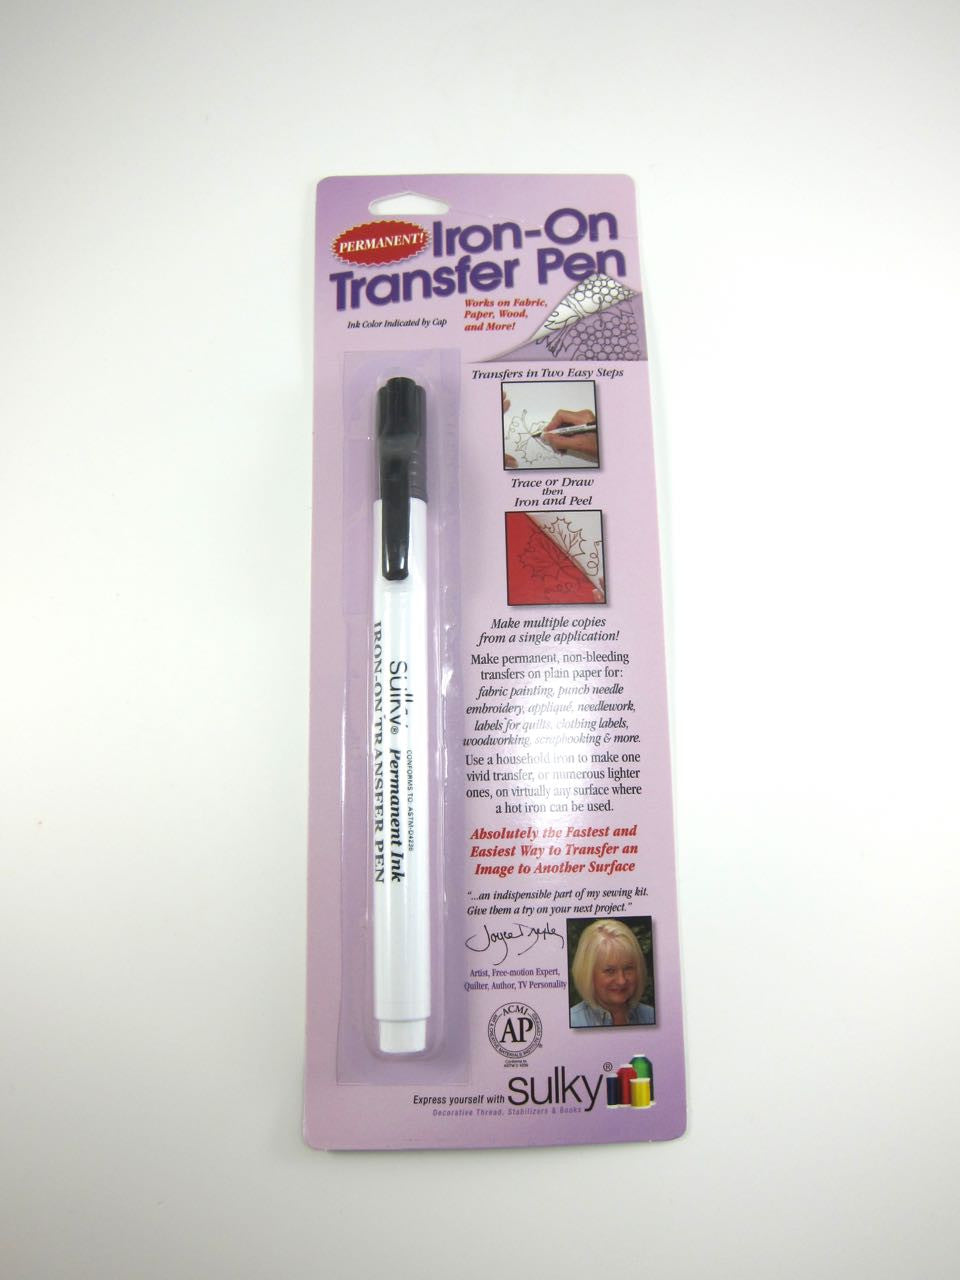 Black Sulky Iron-on Transfer Pen Marker - Snuggly Monkey